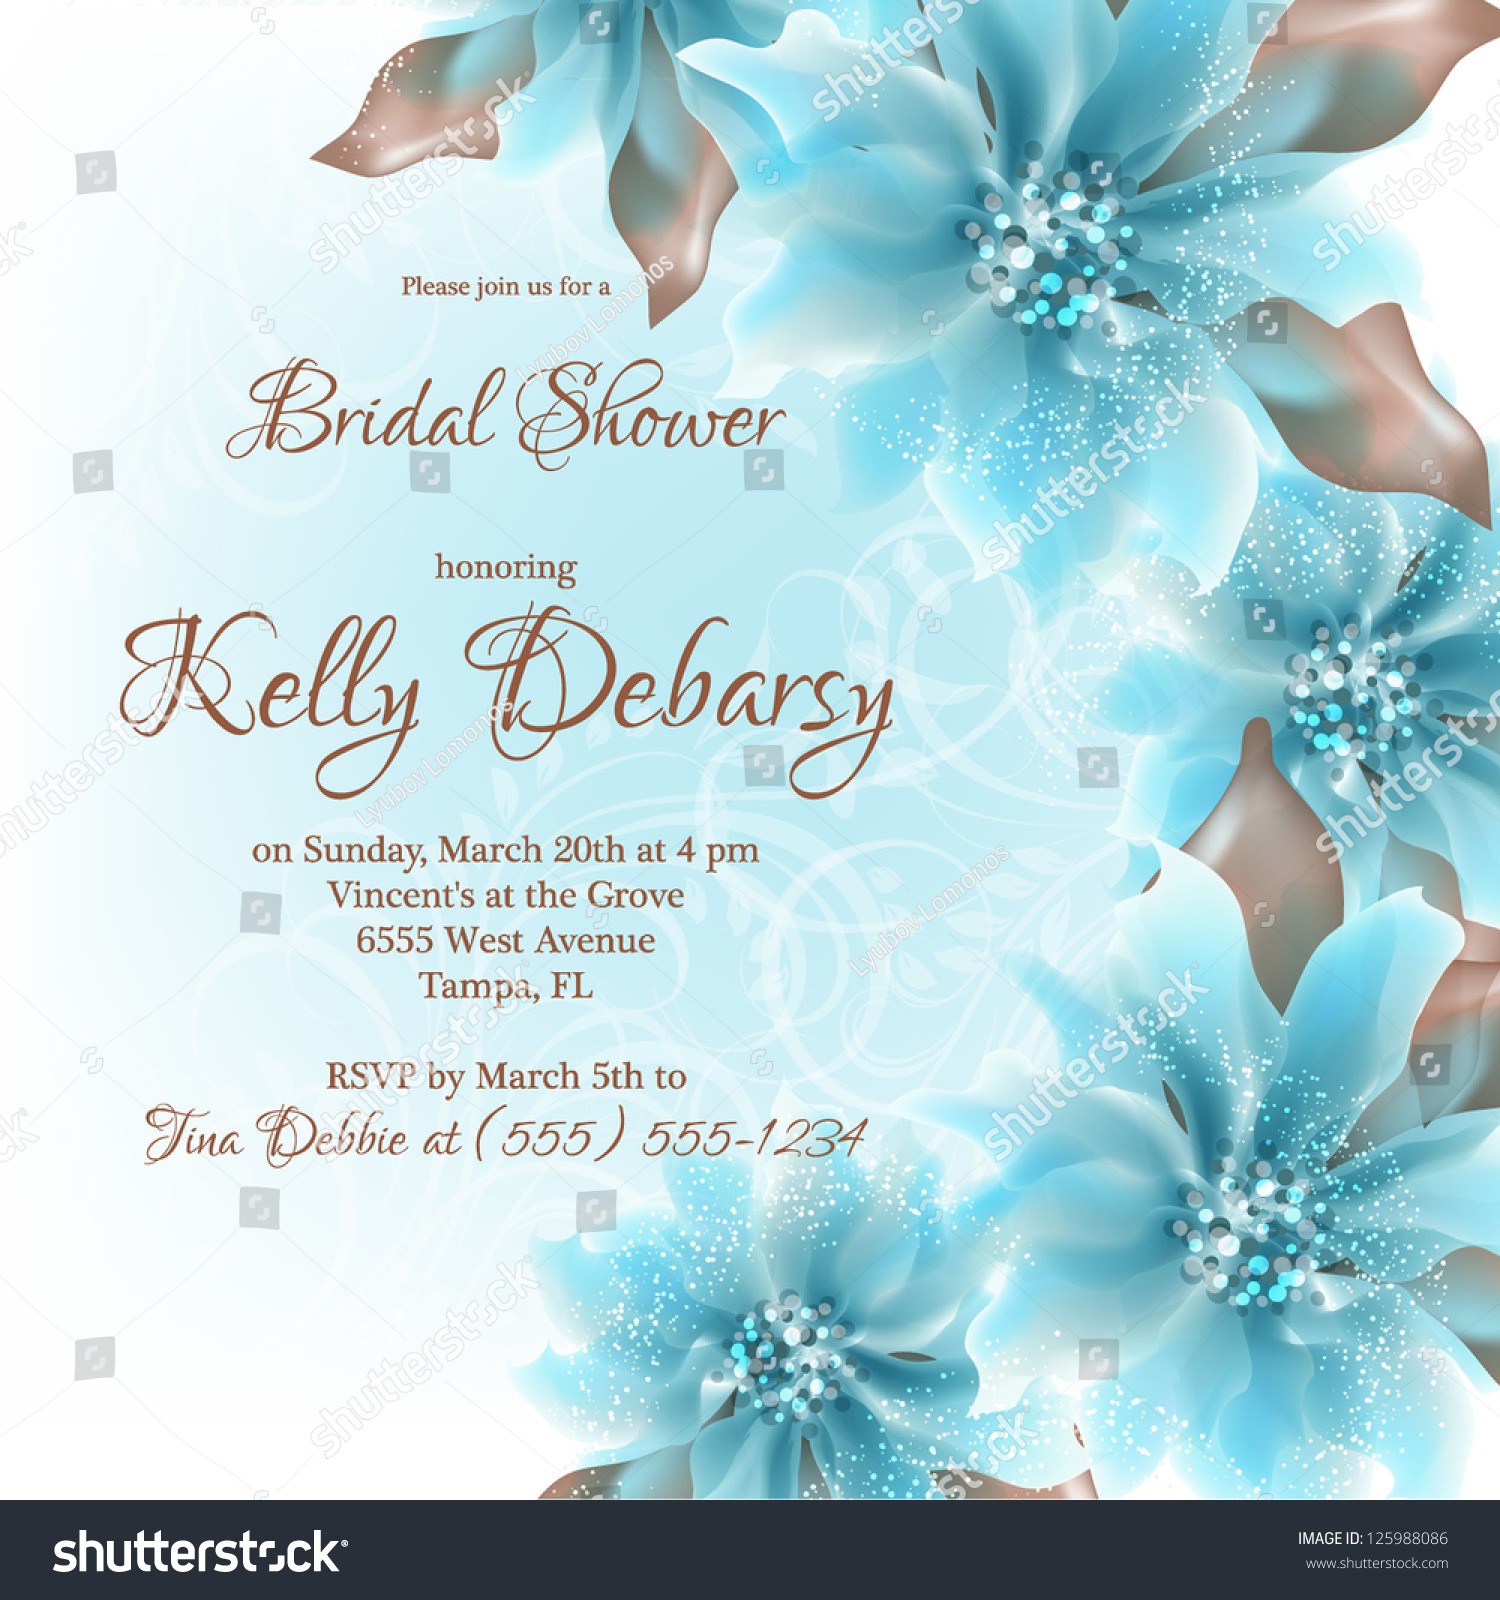 Invitation Wedding Card Abstract Floral Background Vector de ...